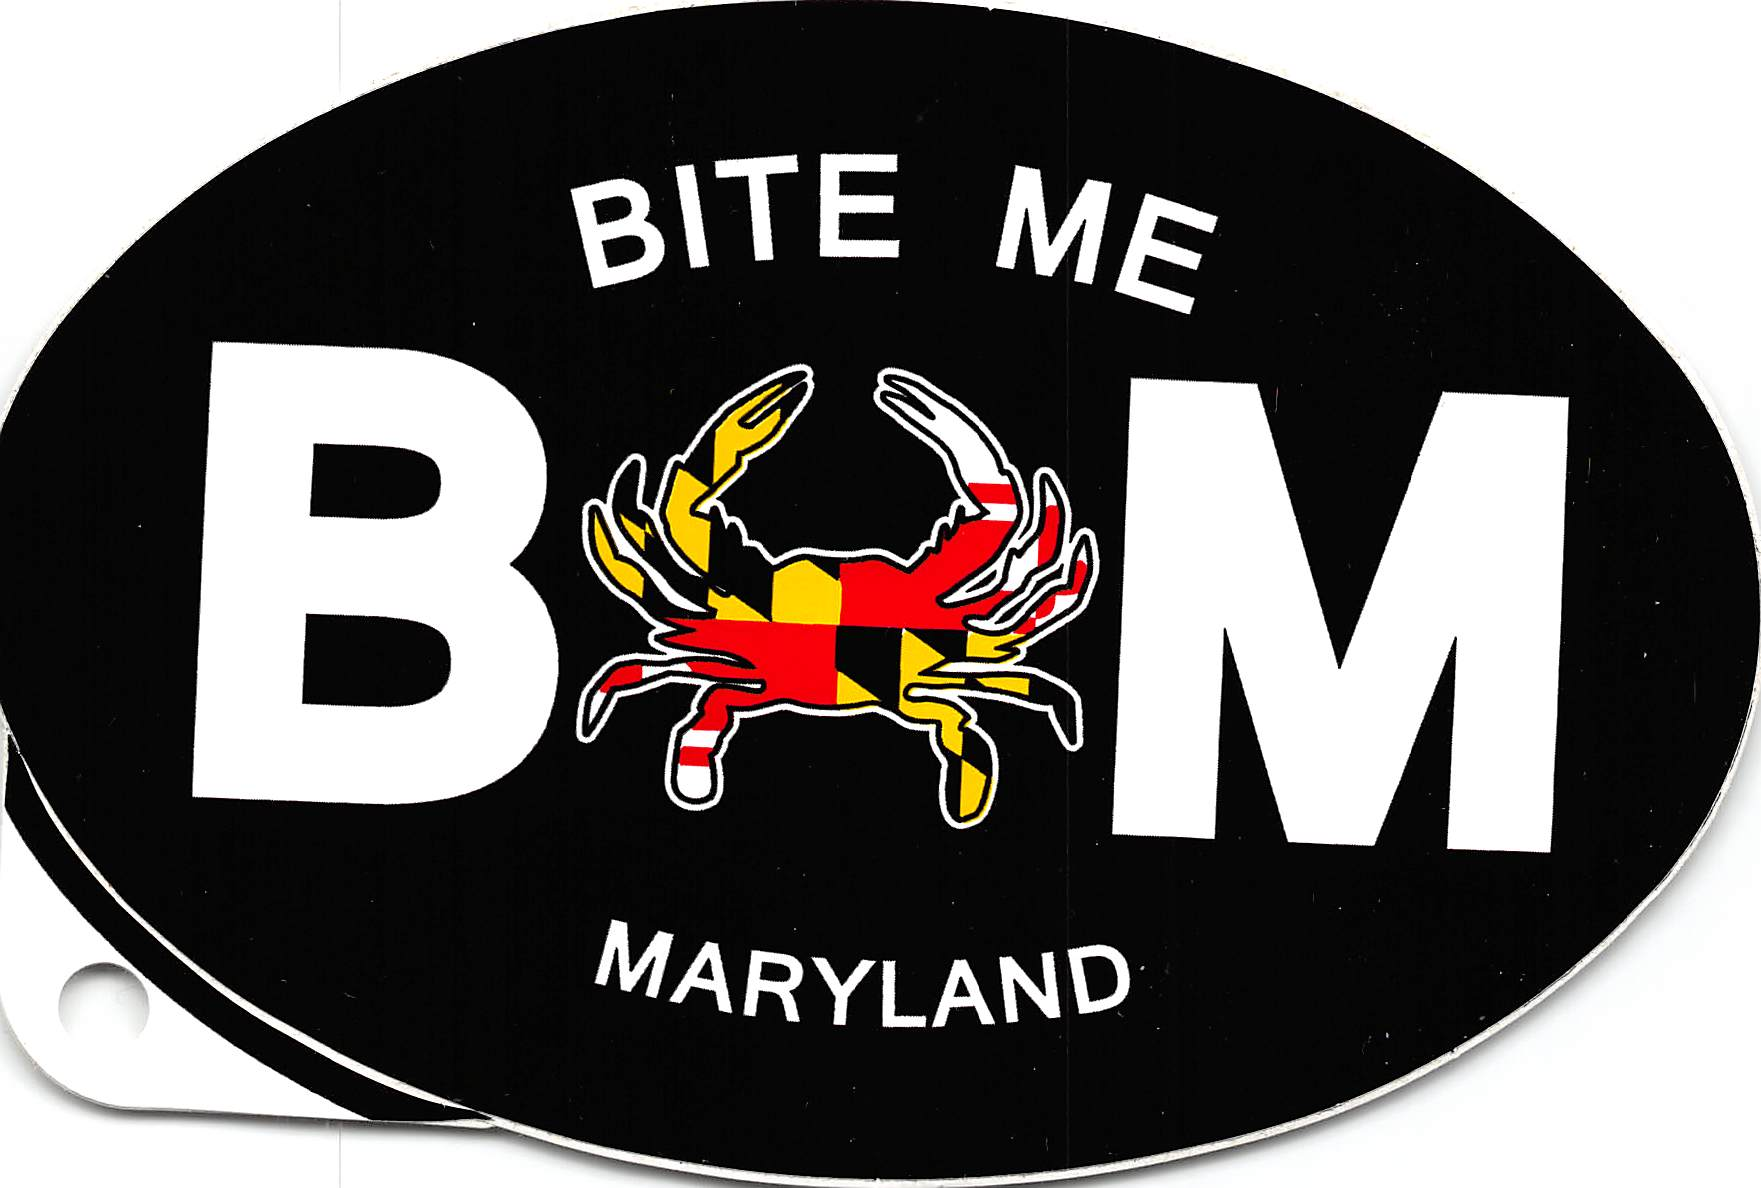 Maryland Bite Me Euro Sticker